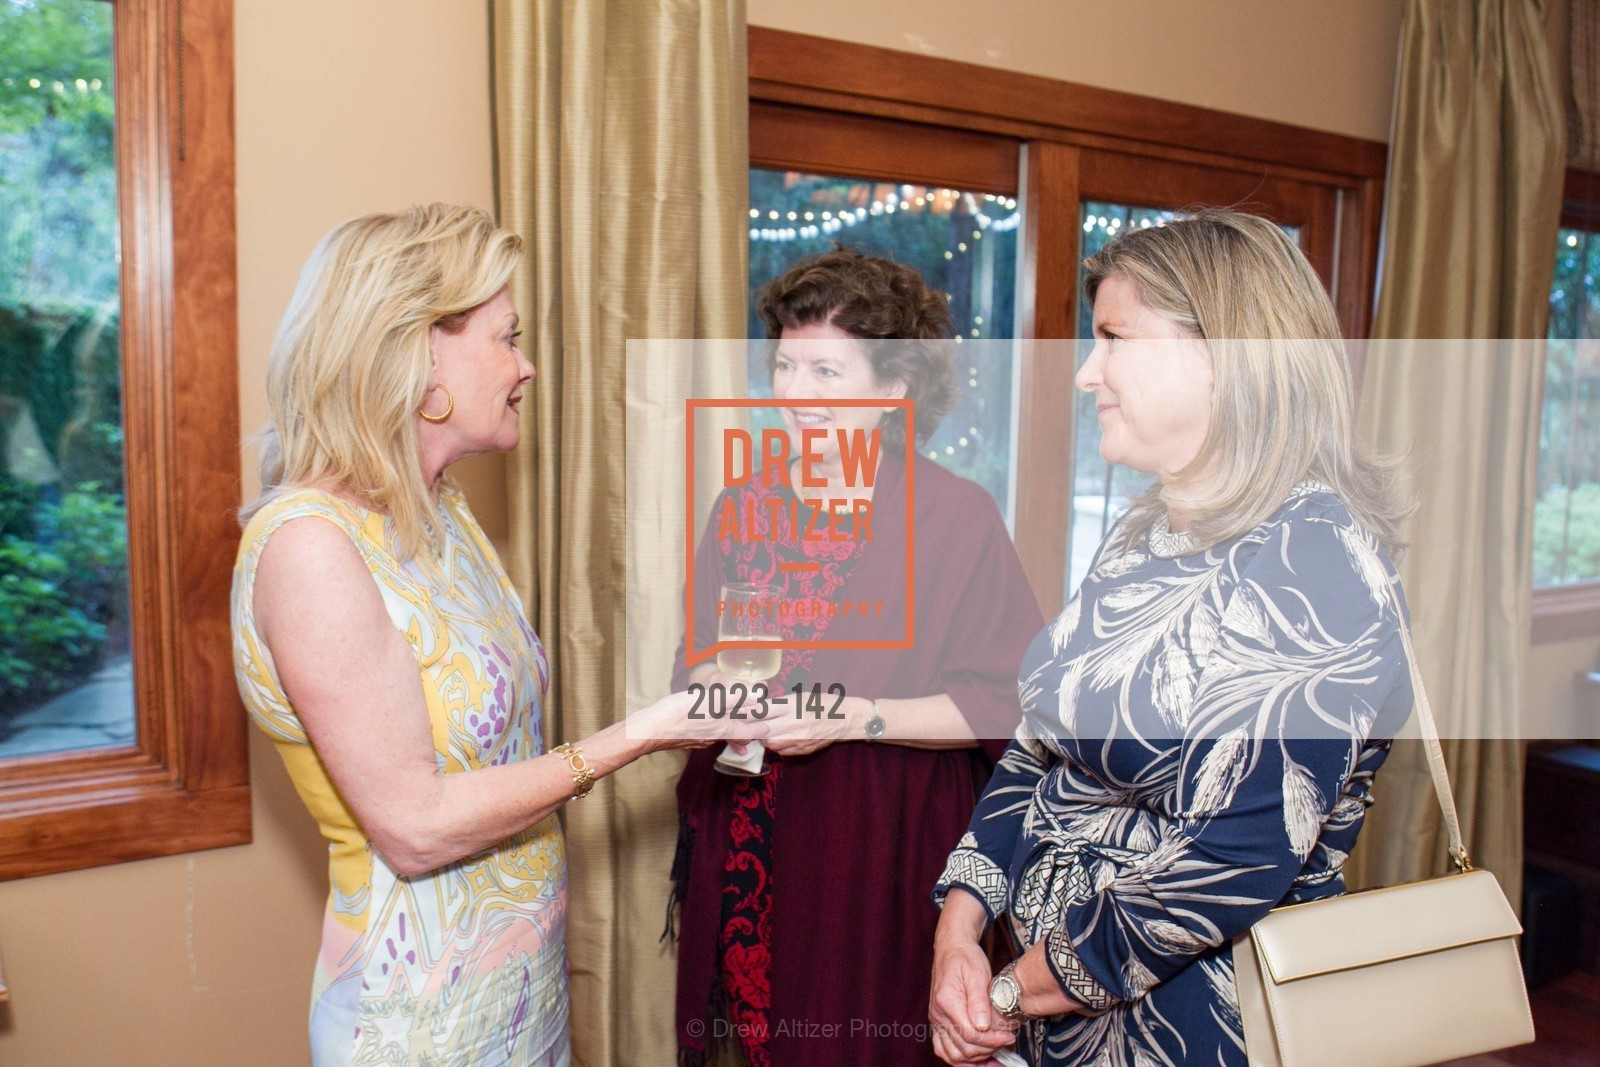 Alison Carlson, Jacqueline Witte, Wynne Dubovoy, THE MAN WITHIN book launch with Randolph Churchill, Private Residence, June 2nd, 2015,Drew Altizer, Drew Altizer Photography, full-service agency, private events, San Francisco photographer, photographer california